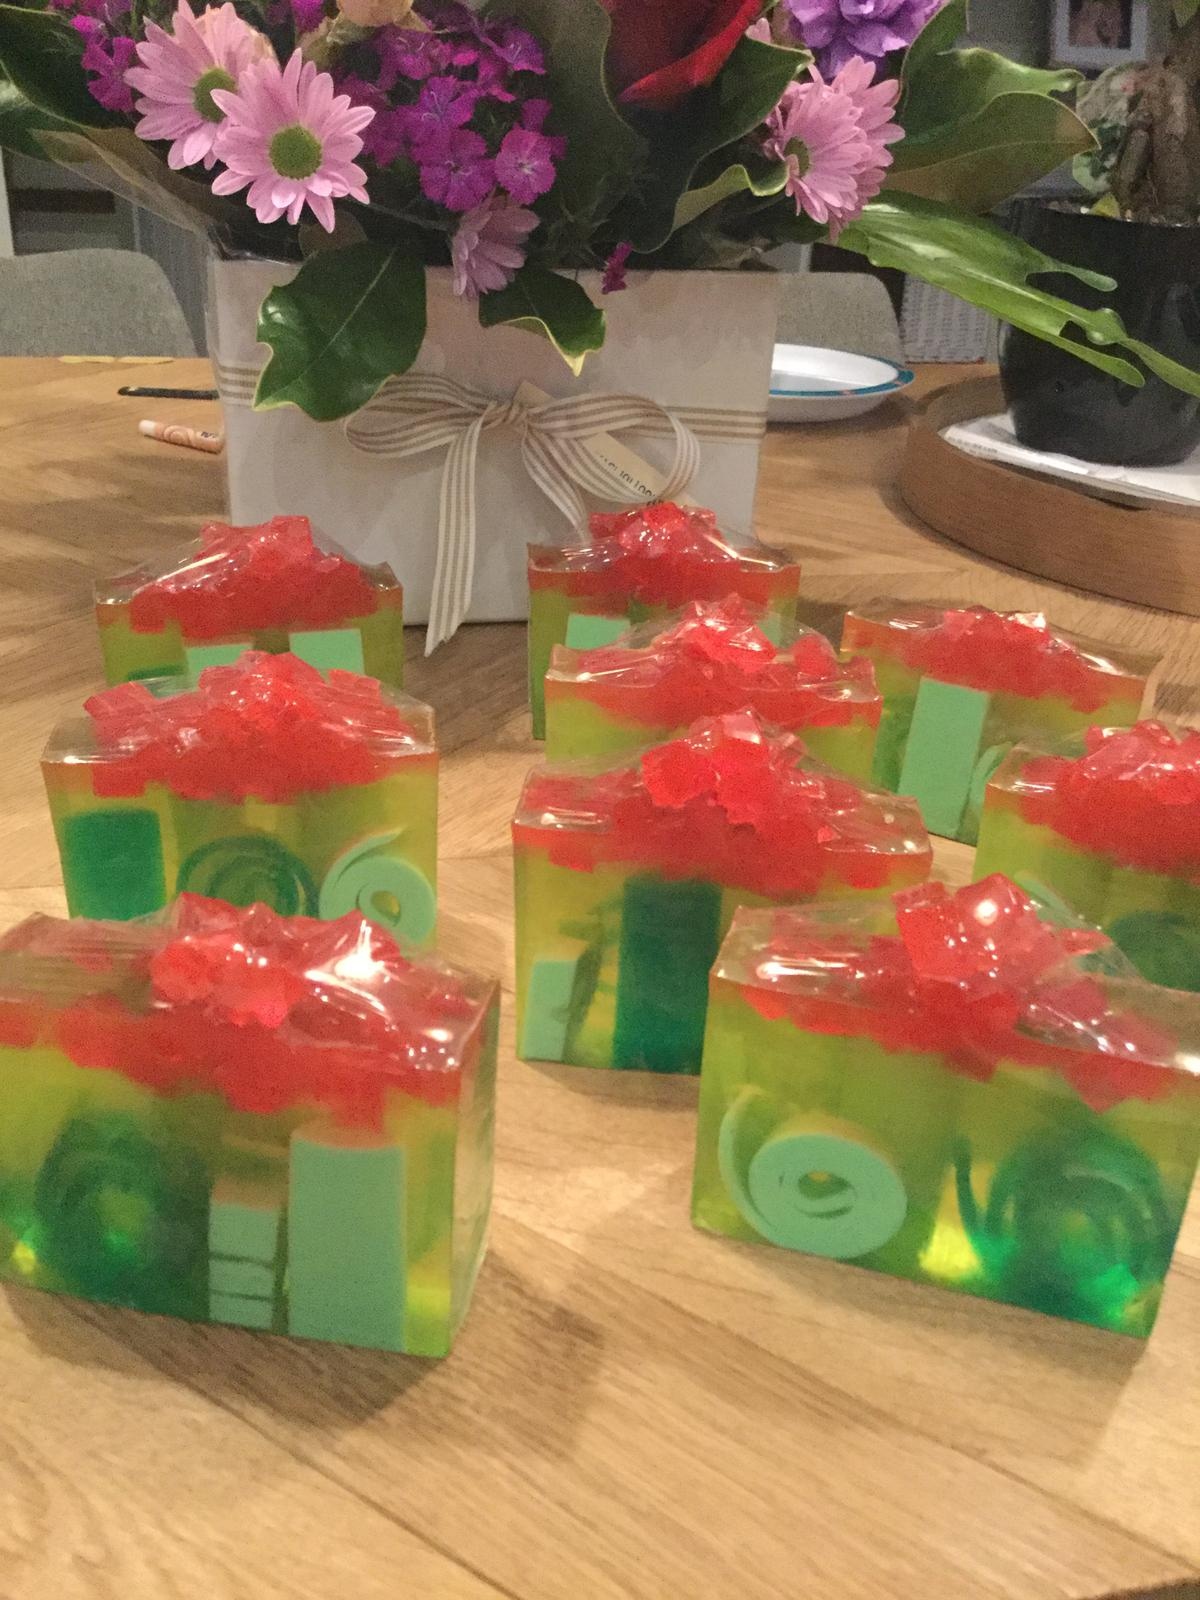 Watermelon & kiwi fruit soap